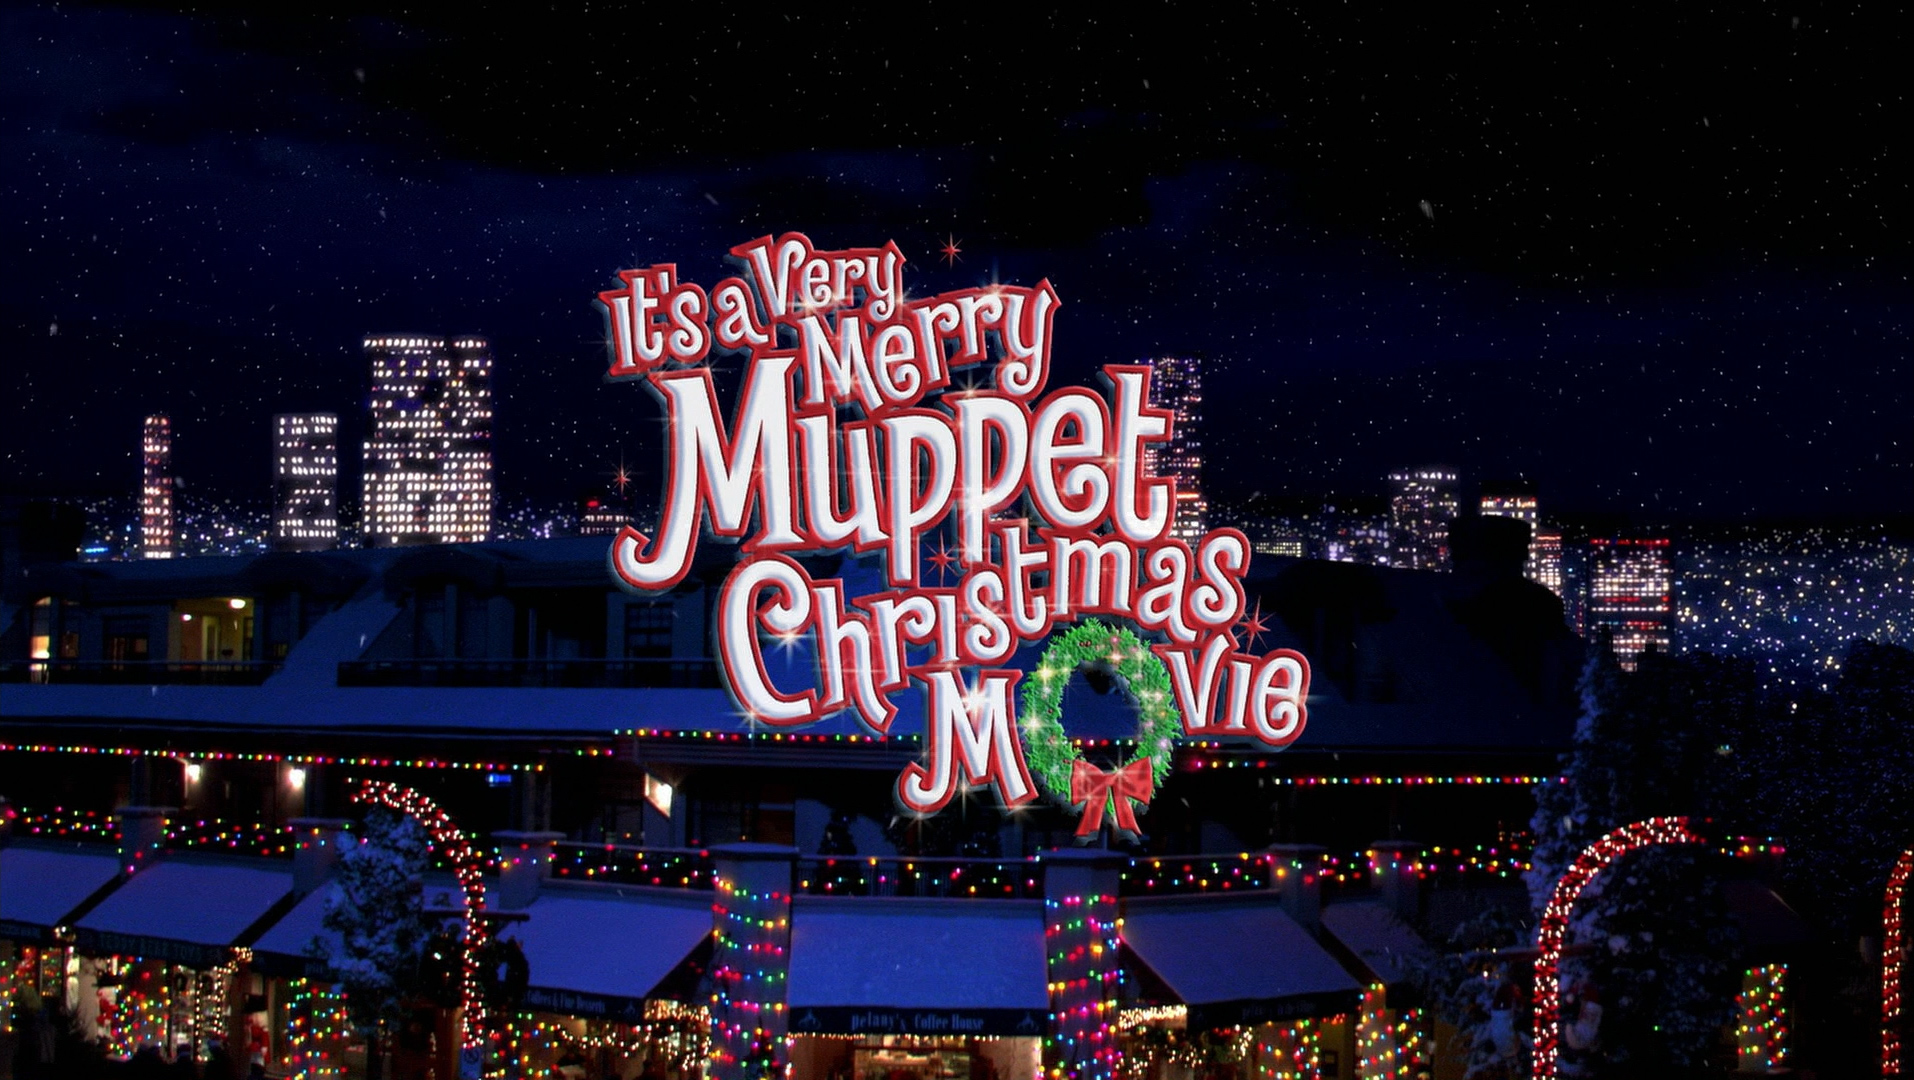 It's a Very Merry Muppet Christmas Movie | Muppet Wiki | FANDOM ...